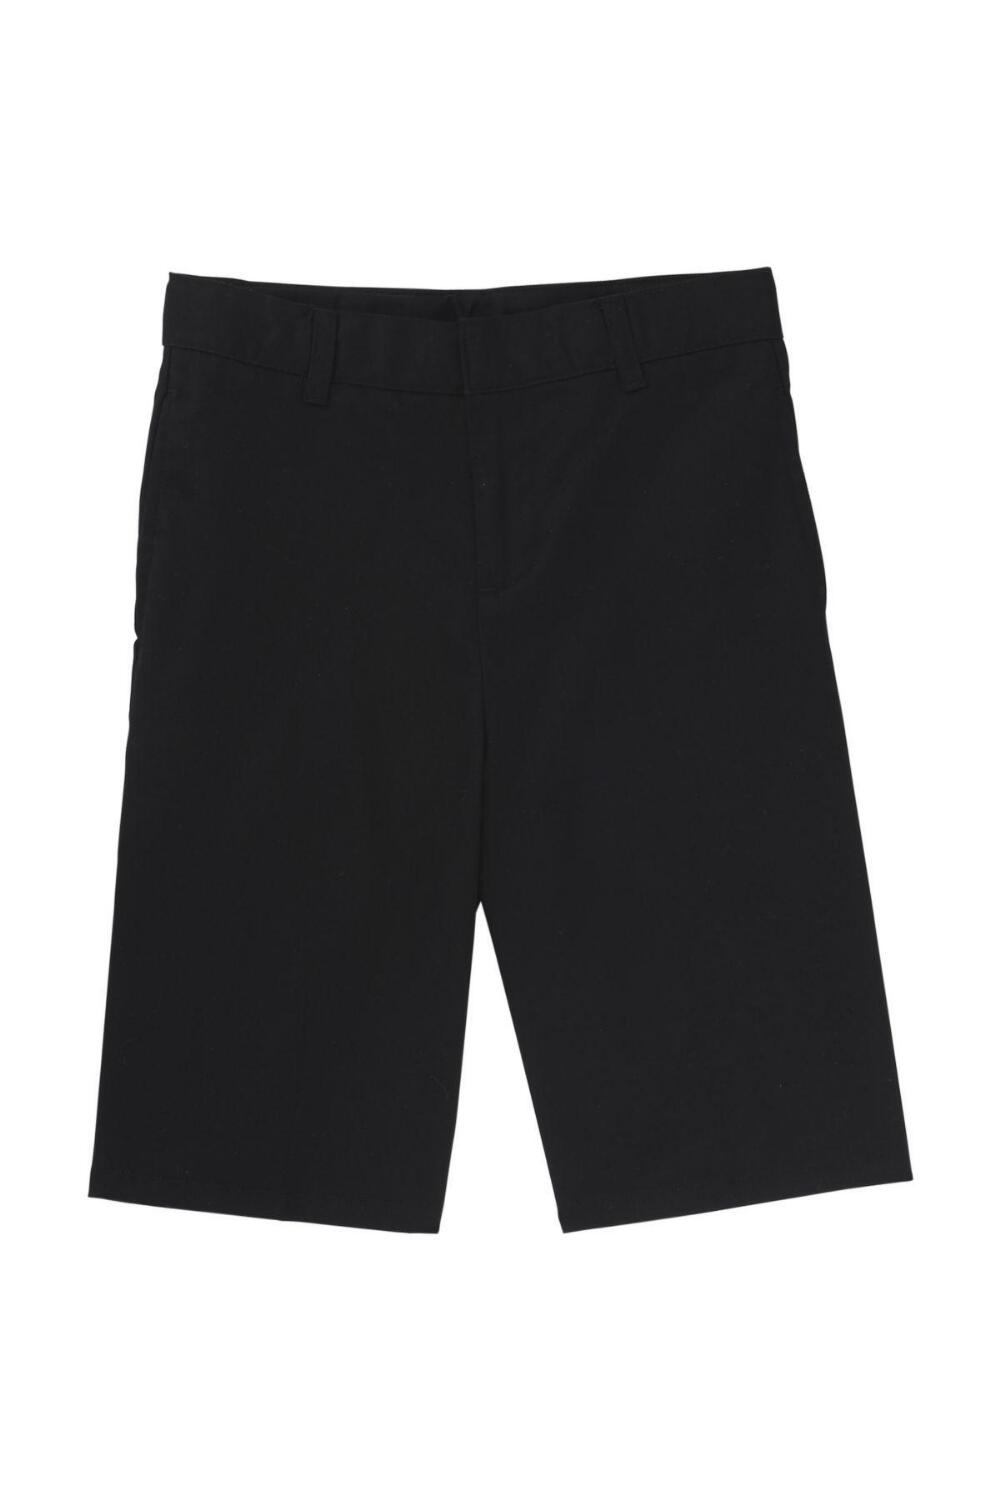 Boys Flat Front Adjustable Waist Uniform Shorts (Boy's Short Color: Black, Boy's Short Size: Size 4)